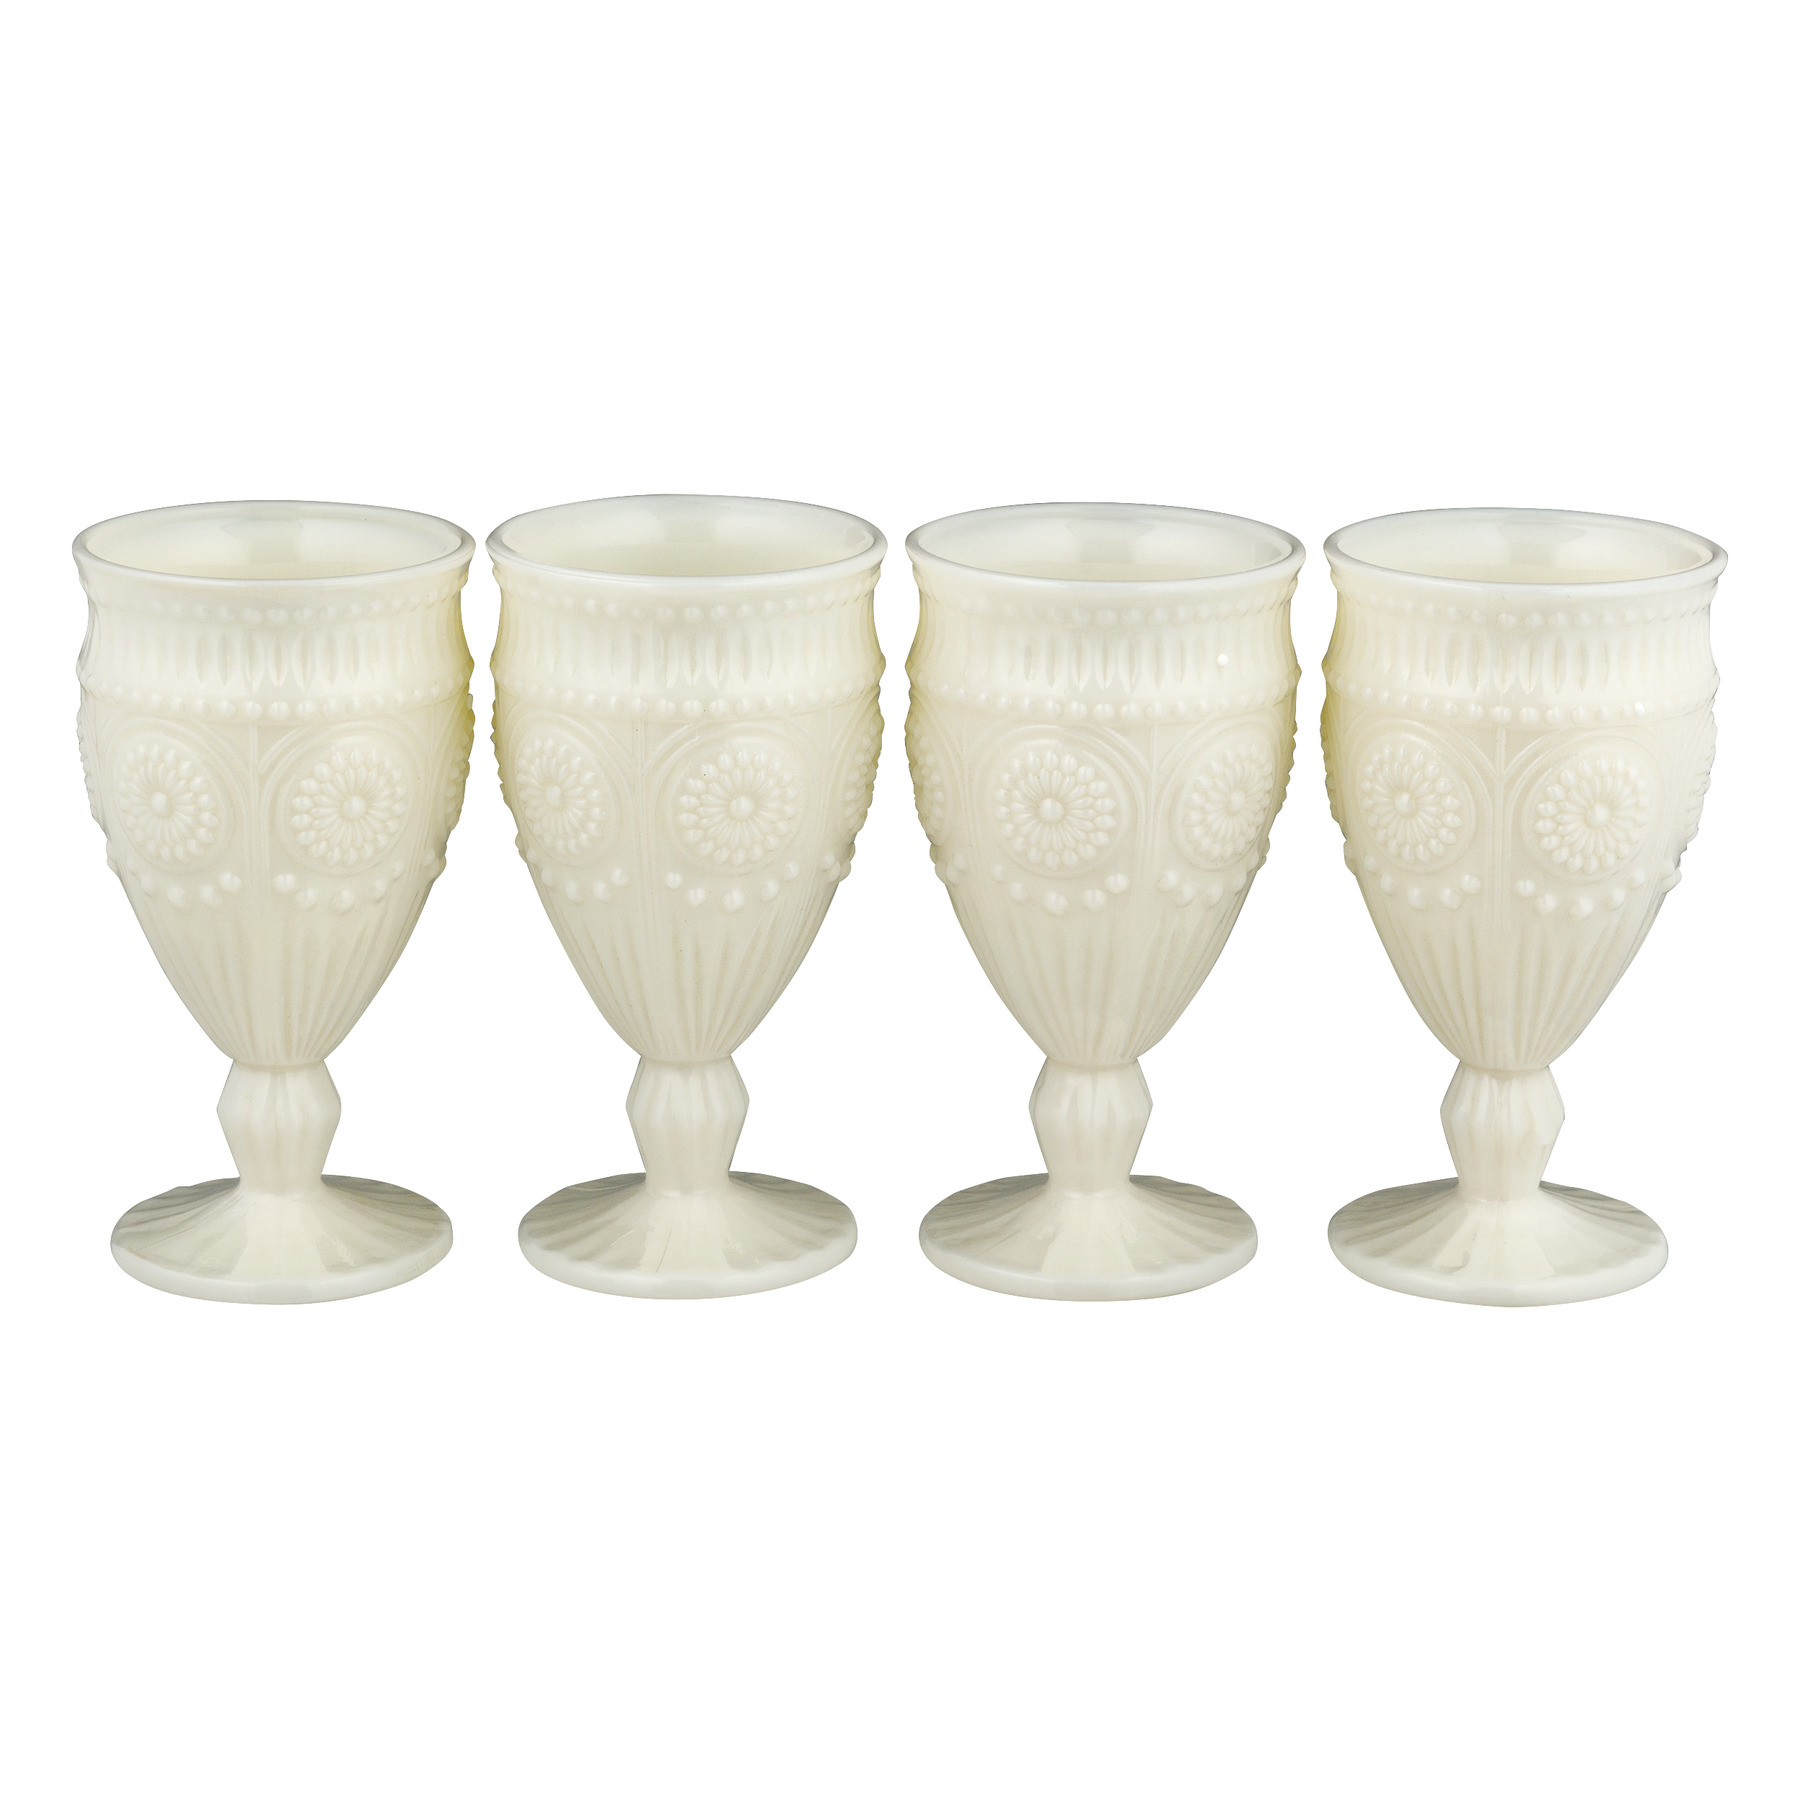 The Pioneer Woman Adeline Goblet Set White - 4 PK, 4.0 PACK